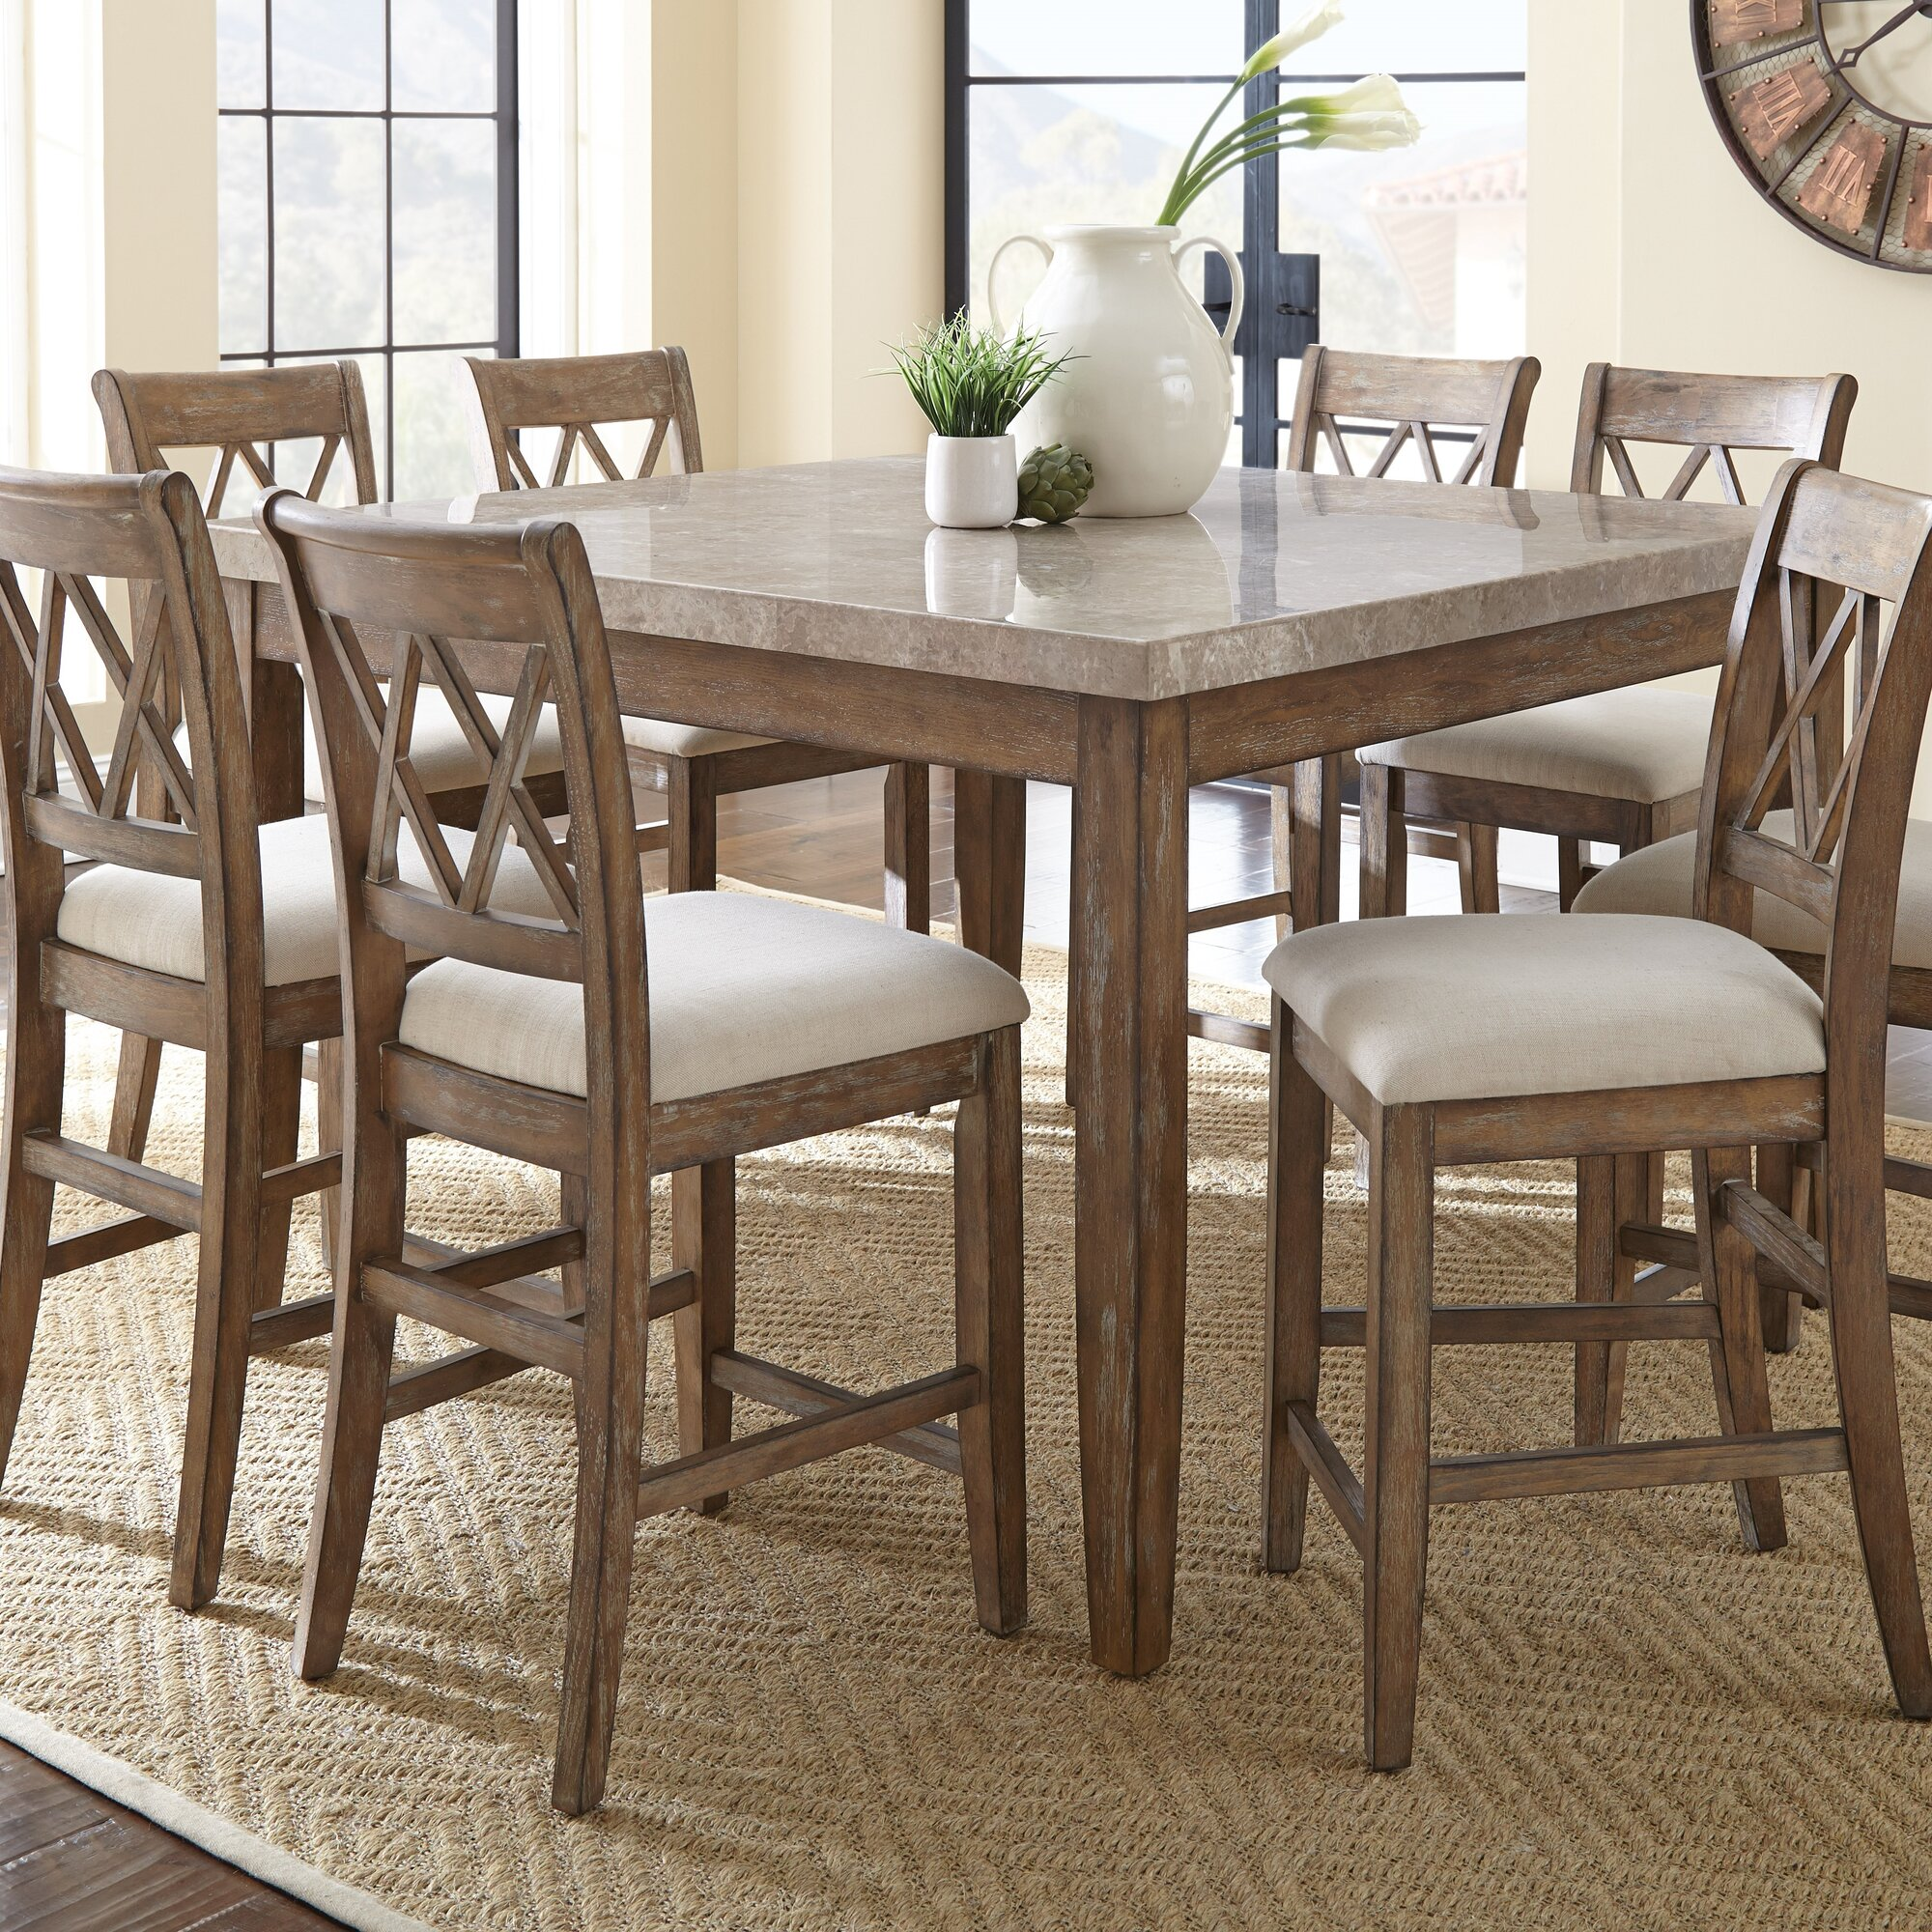 counter height dining sets you ll love wayfair - Tall Dining Room Tables